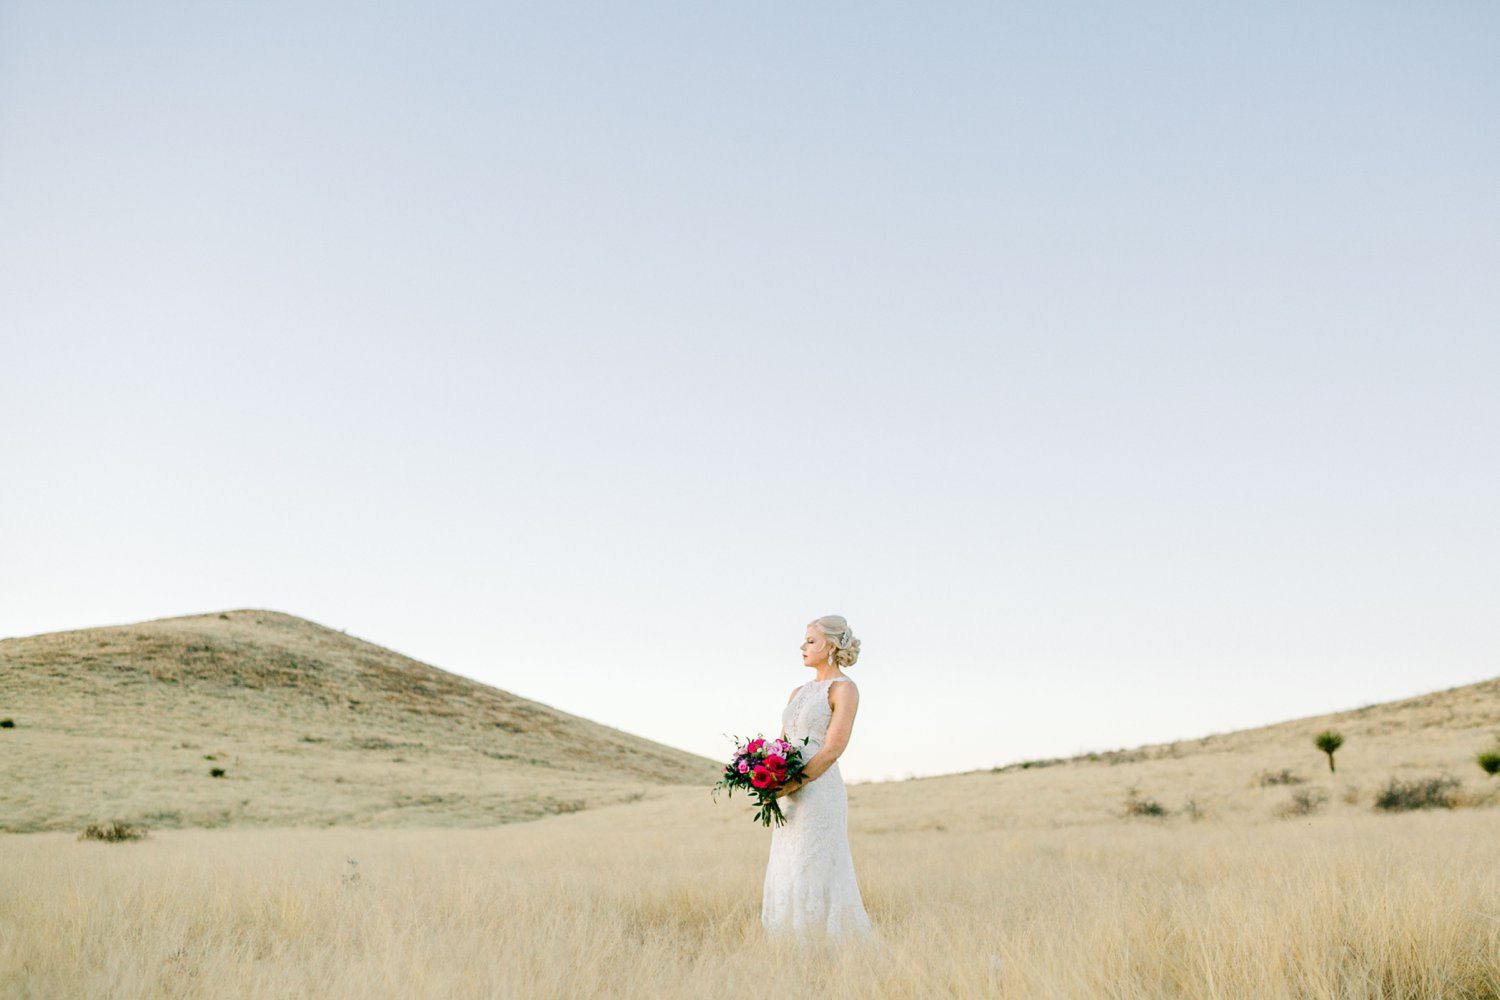 Jenna-evans-bridals-balmorhea-texas-fort-davis-wedding-photographer-lubbock-photographer__0071.jpg